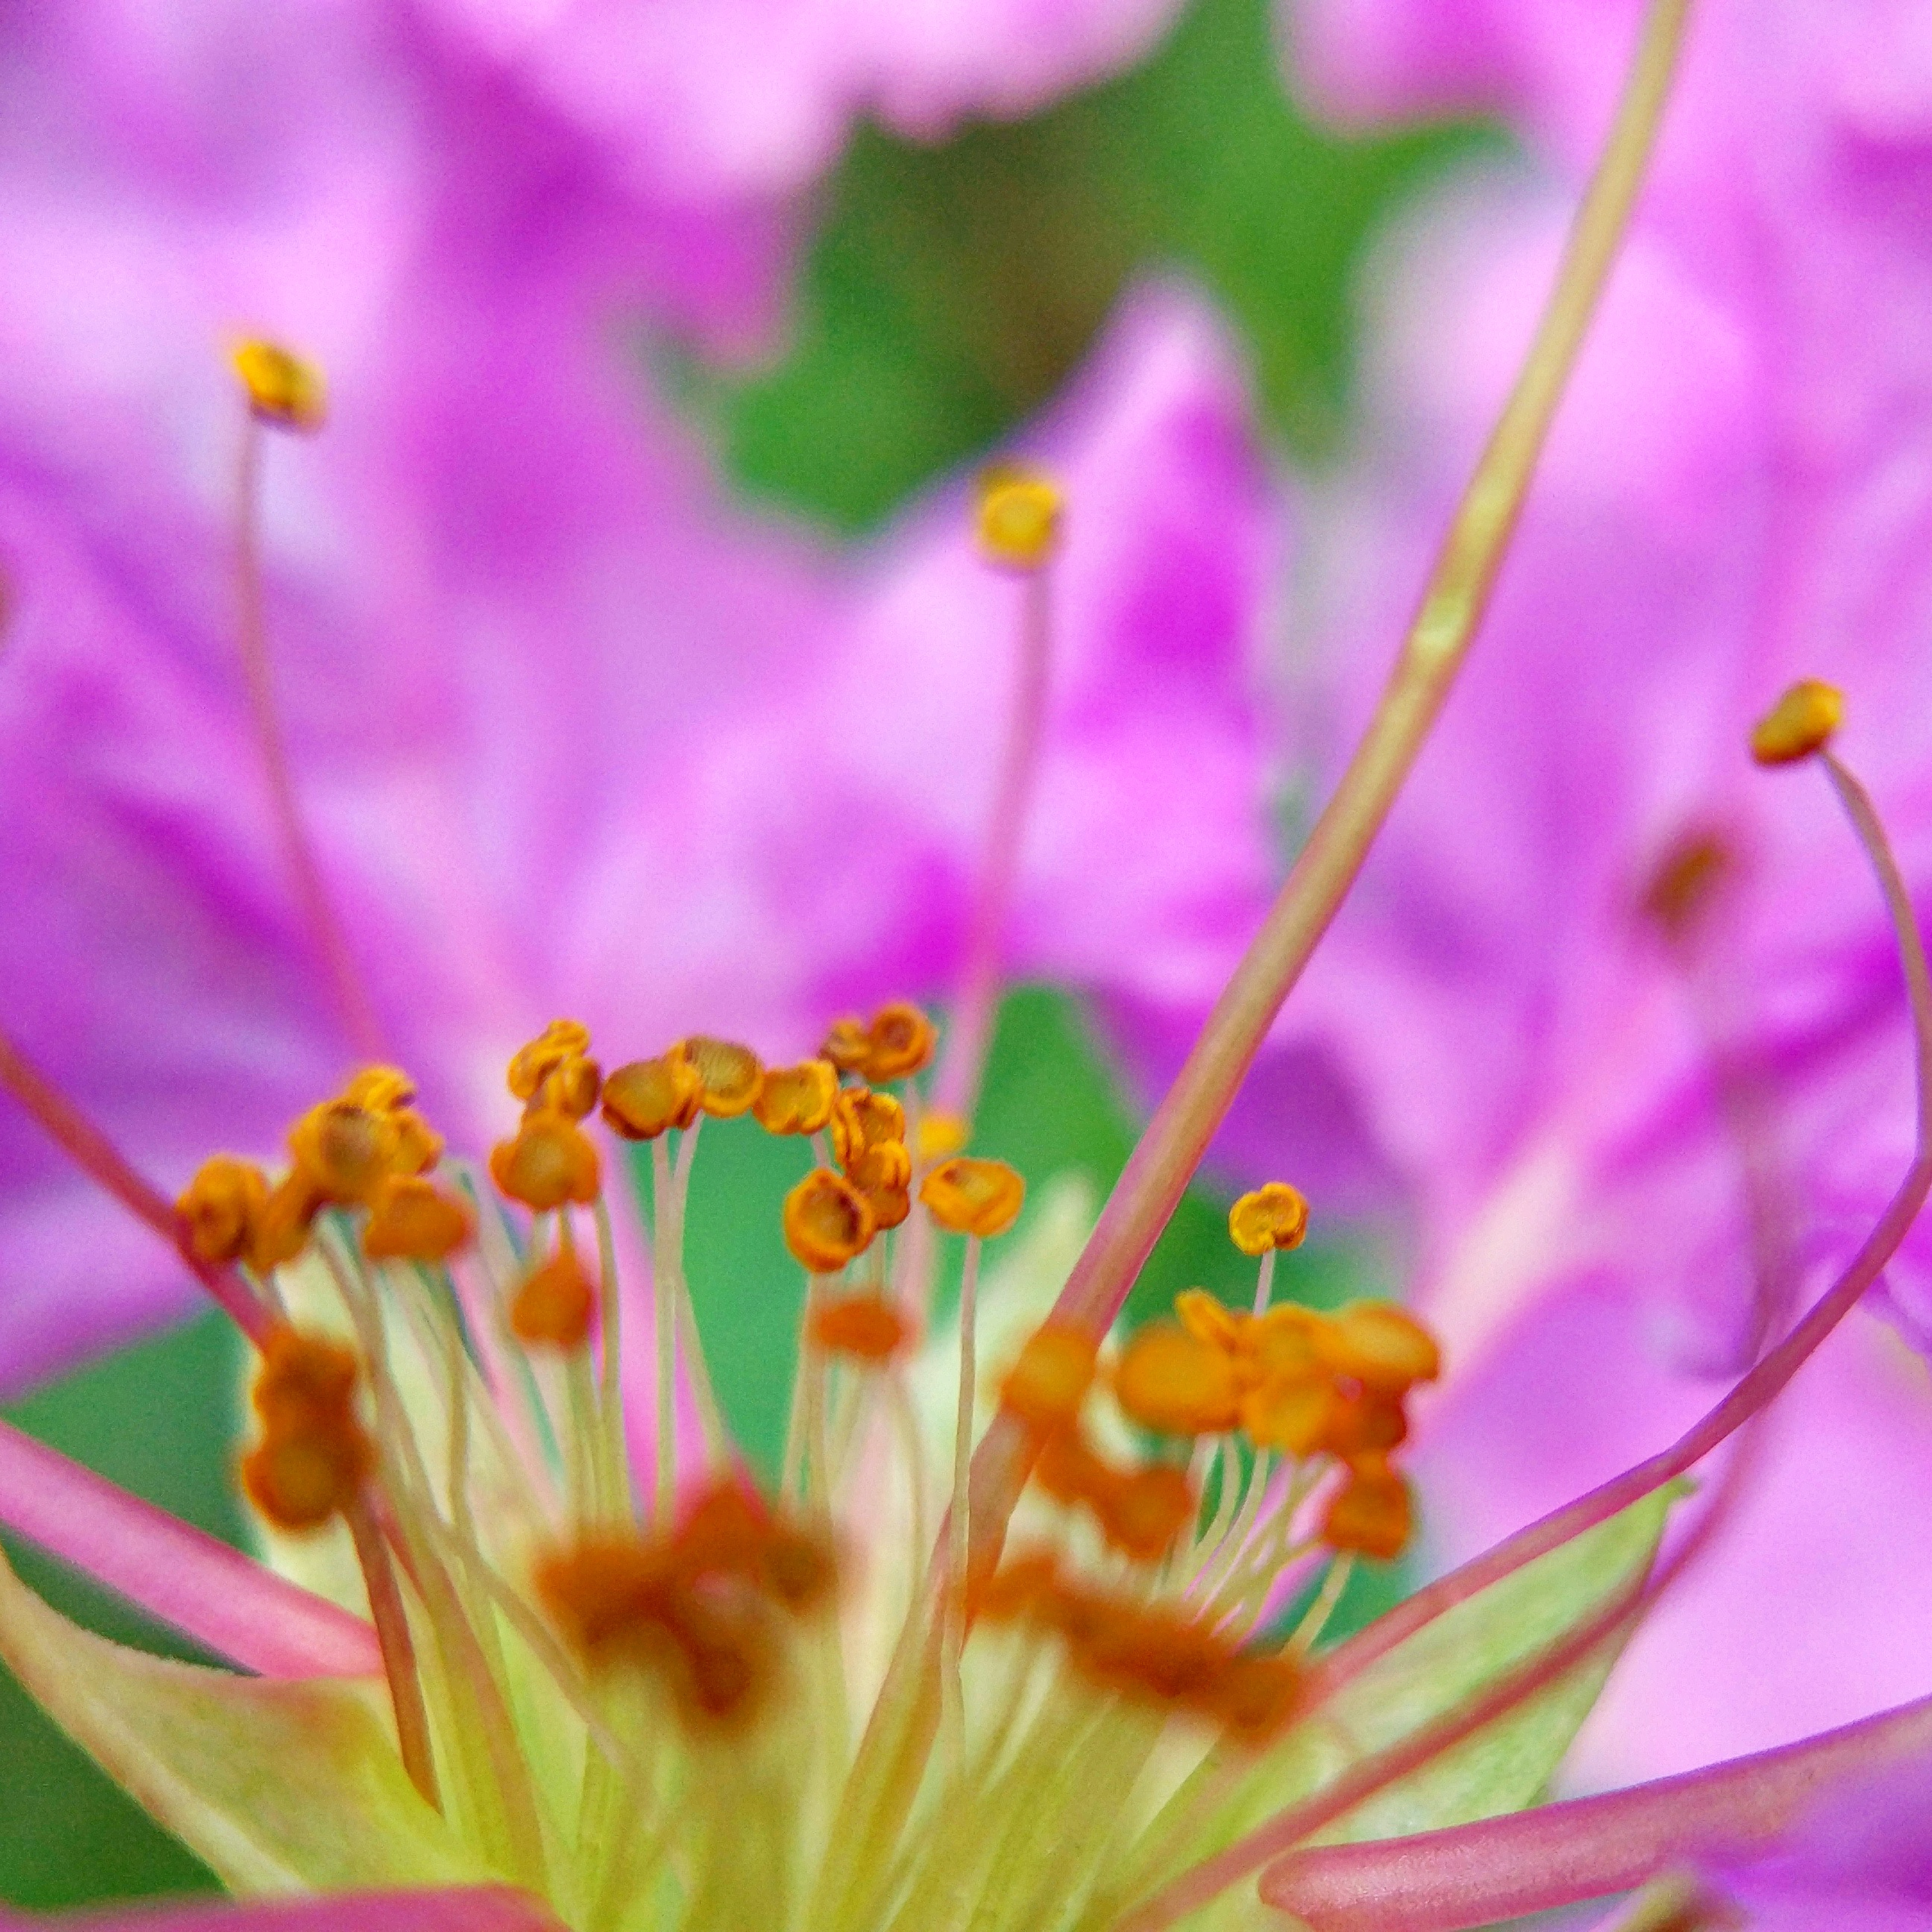 Macro Photography with Apexel 25mm lens and Mi 5 [Part 4]